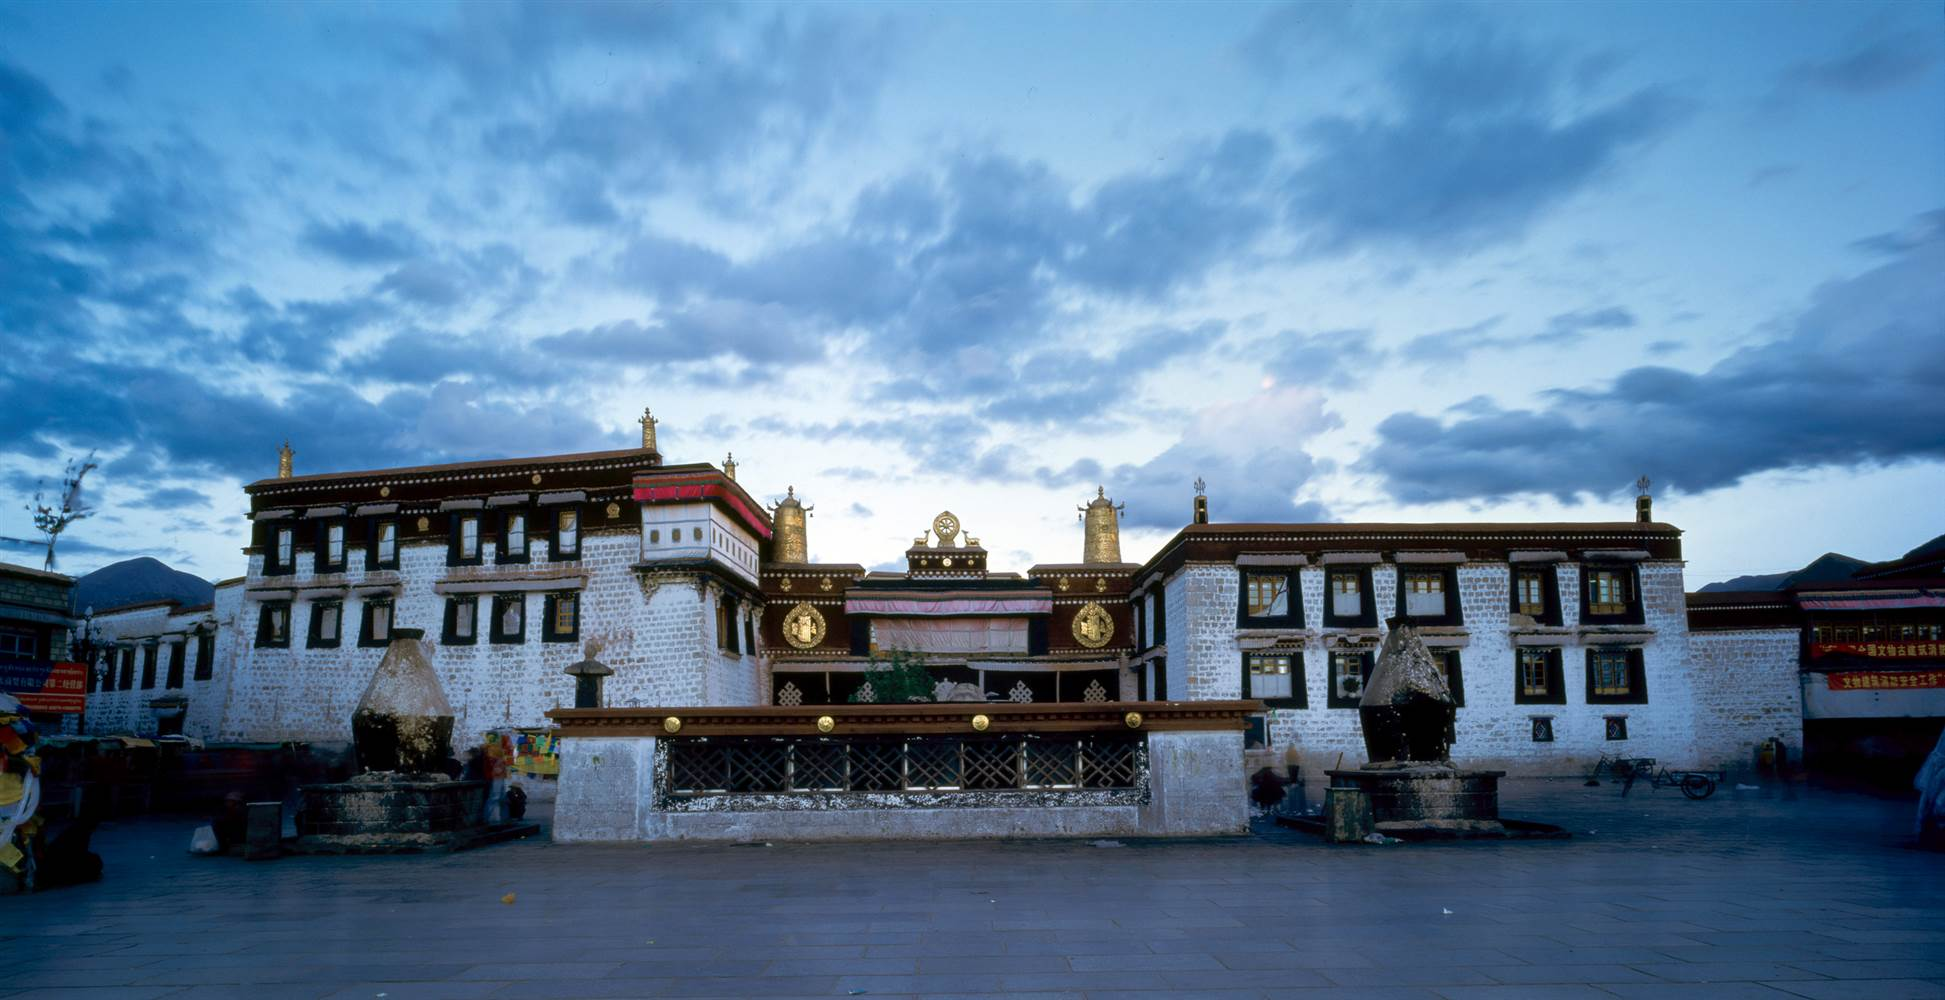 China banned outside visitors to monasteries in Tibet on Dalai Lama's birthday